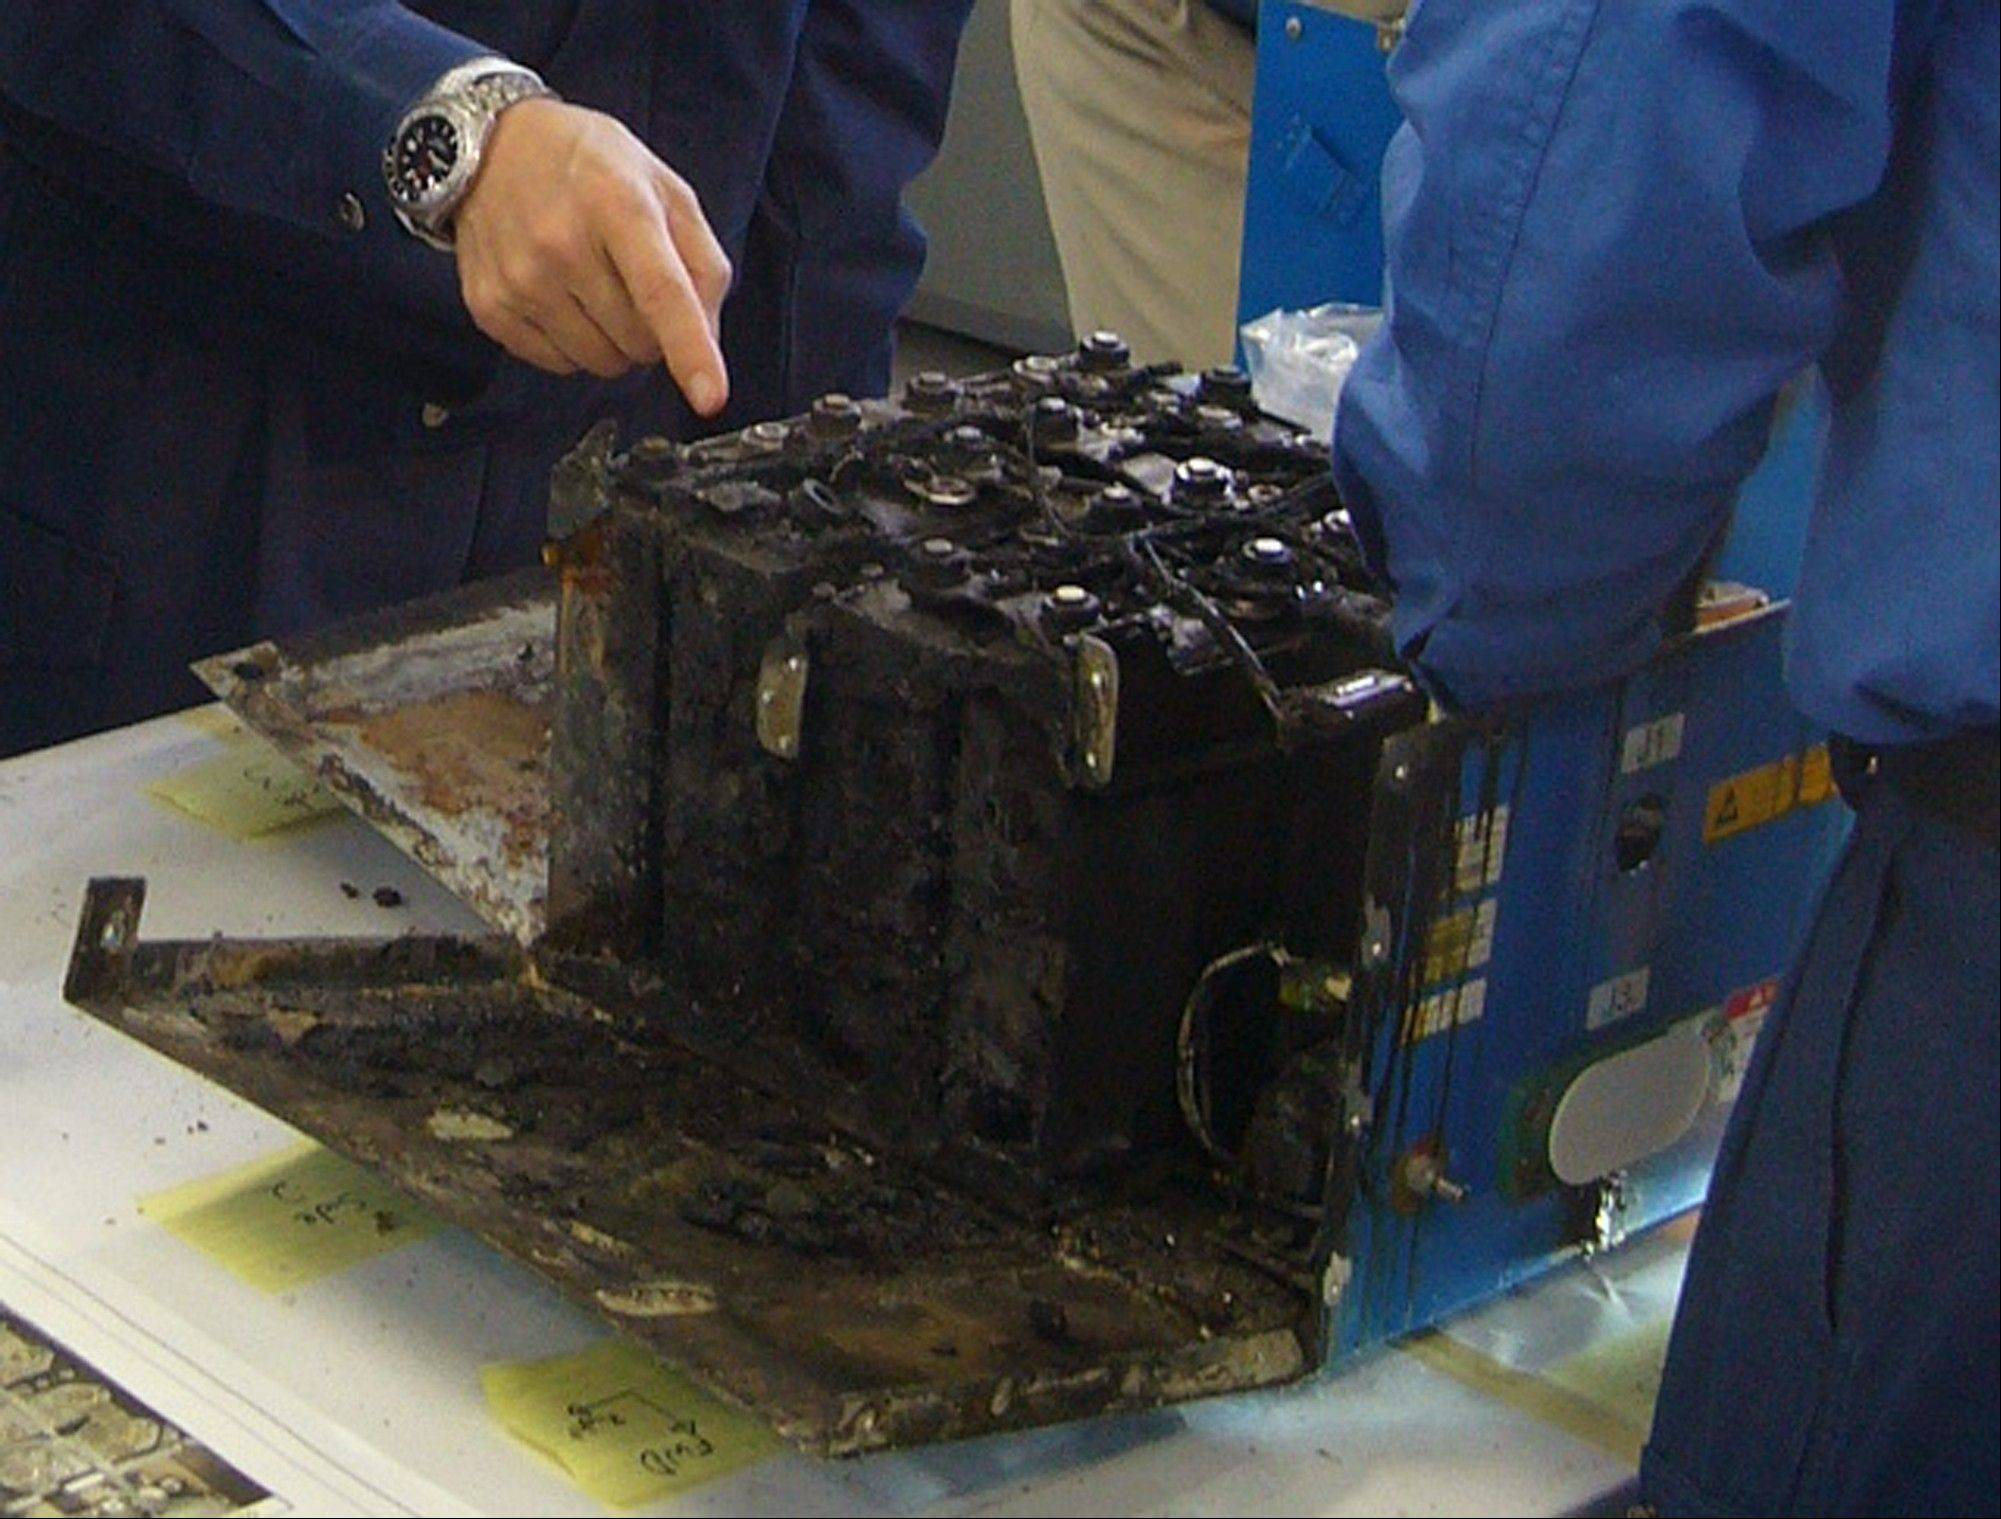 The distorted main lithium-ion battery of the All Nippon Airways� Boeing 787 which made an emergency landing, in dismantled by the investigators at its manufacturer GS Yuasa�s headquarters in Kyoto, Japan.